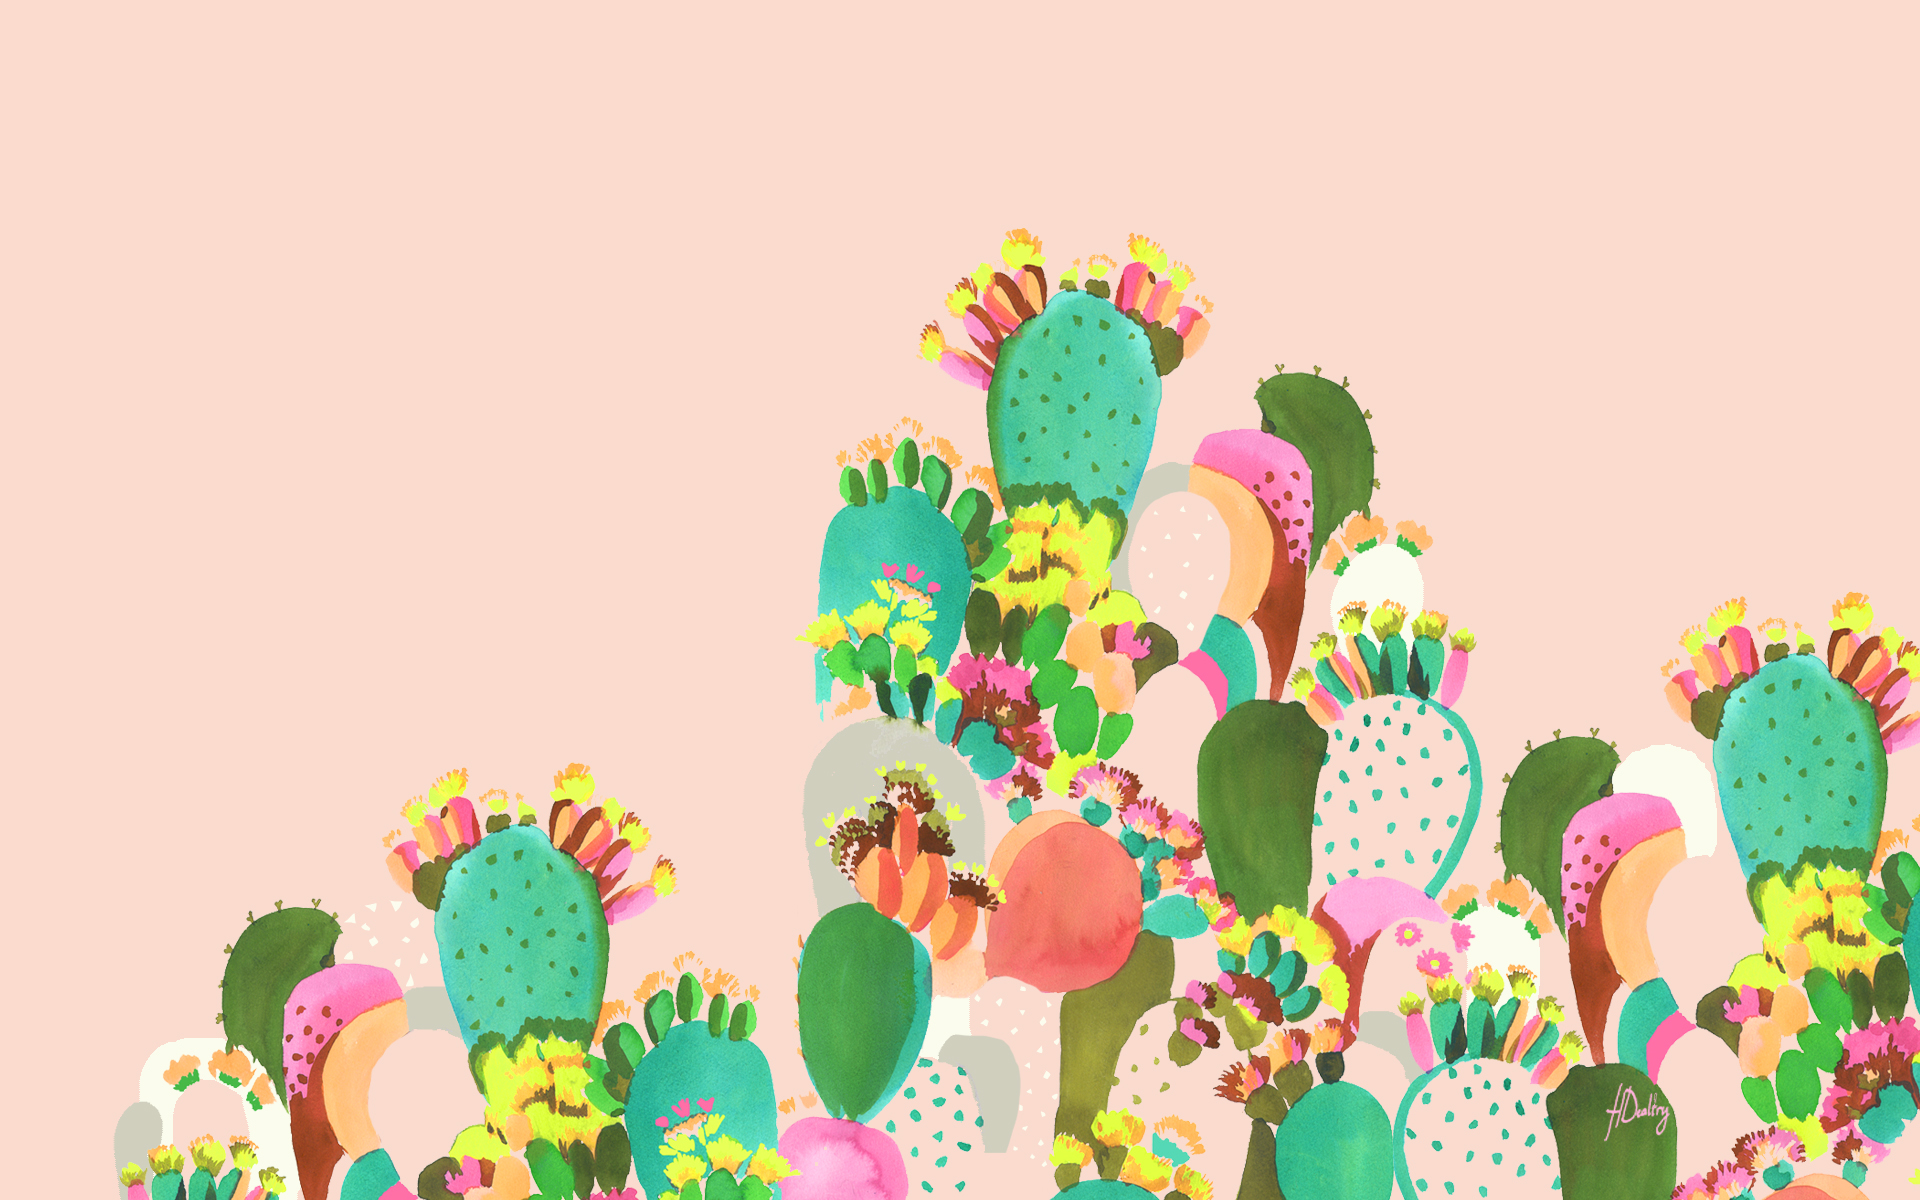 Cactus-by-Helen-Dealtry-wallpaper-wpc5803142